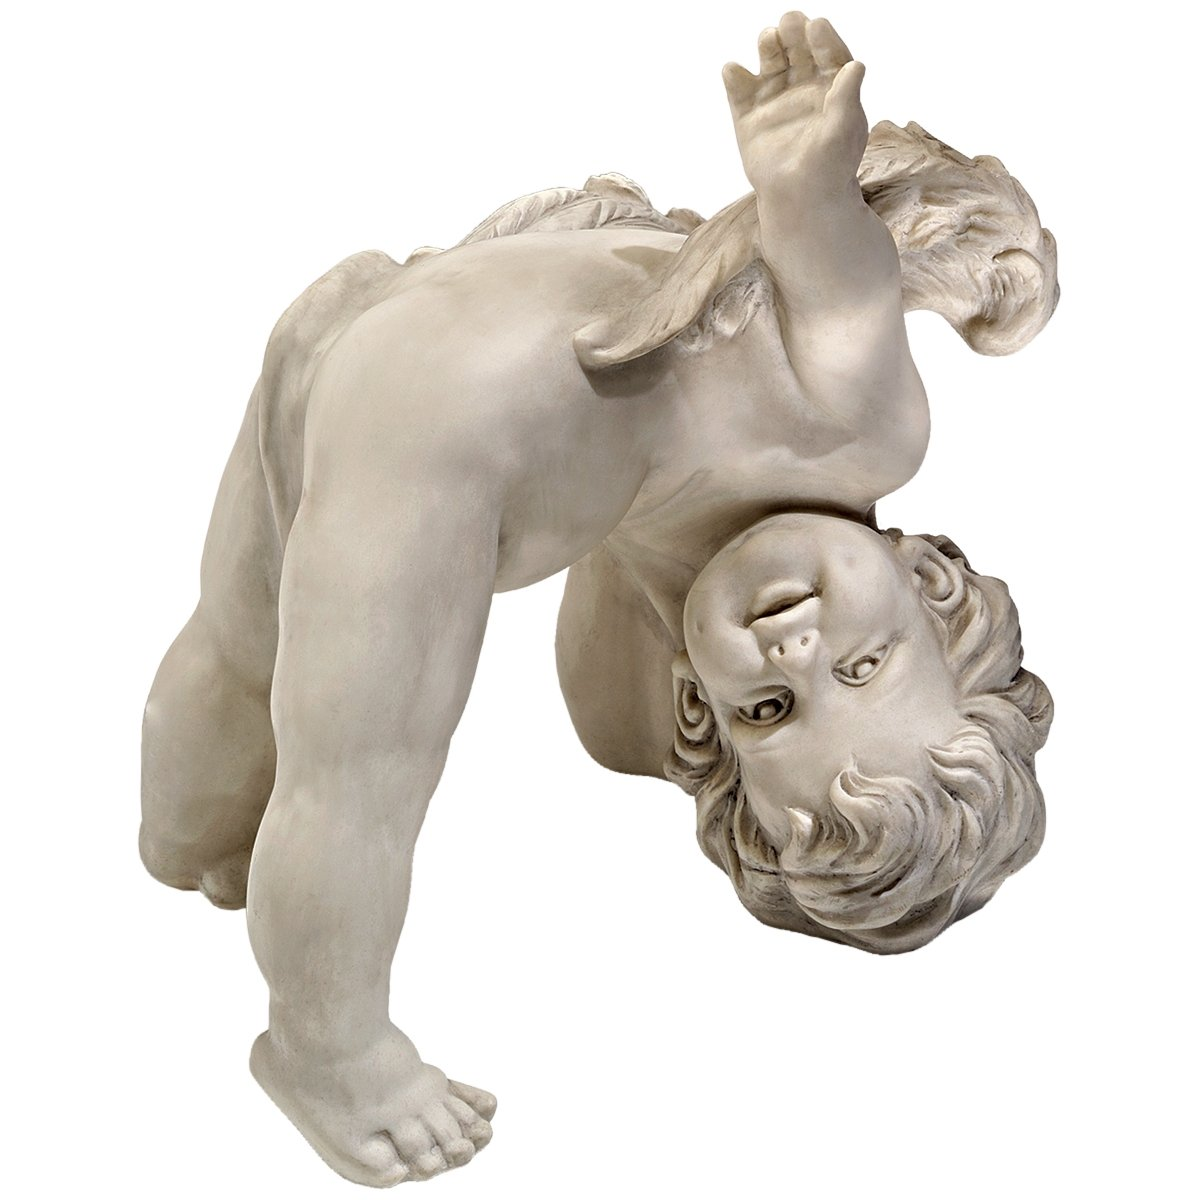 Design Toscano SH93042209 Tumbling Cherub Statue - Set of Topsy and Turvey - antique stone